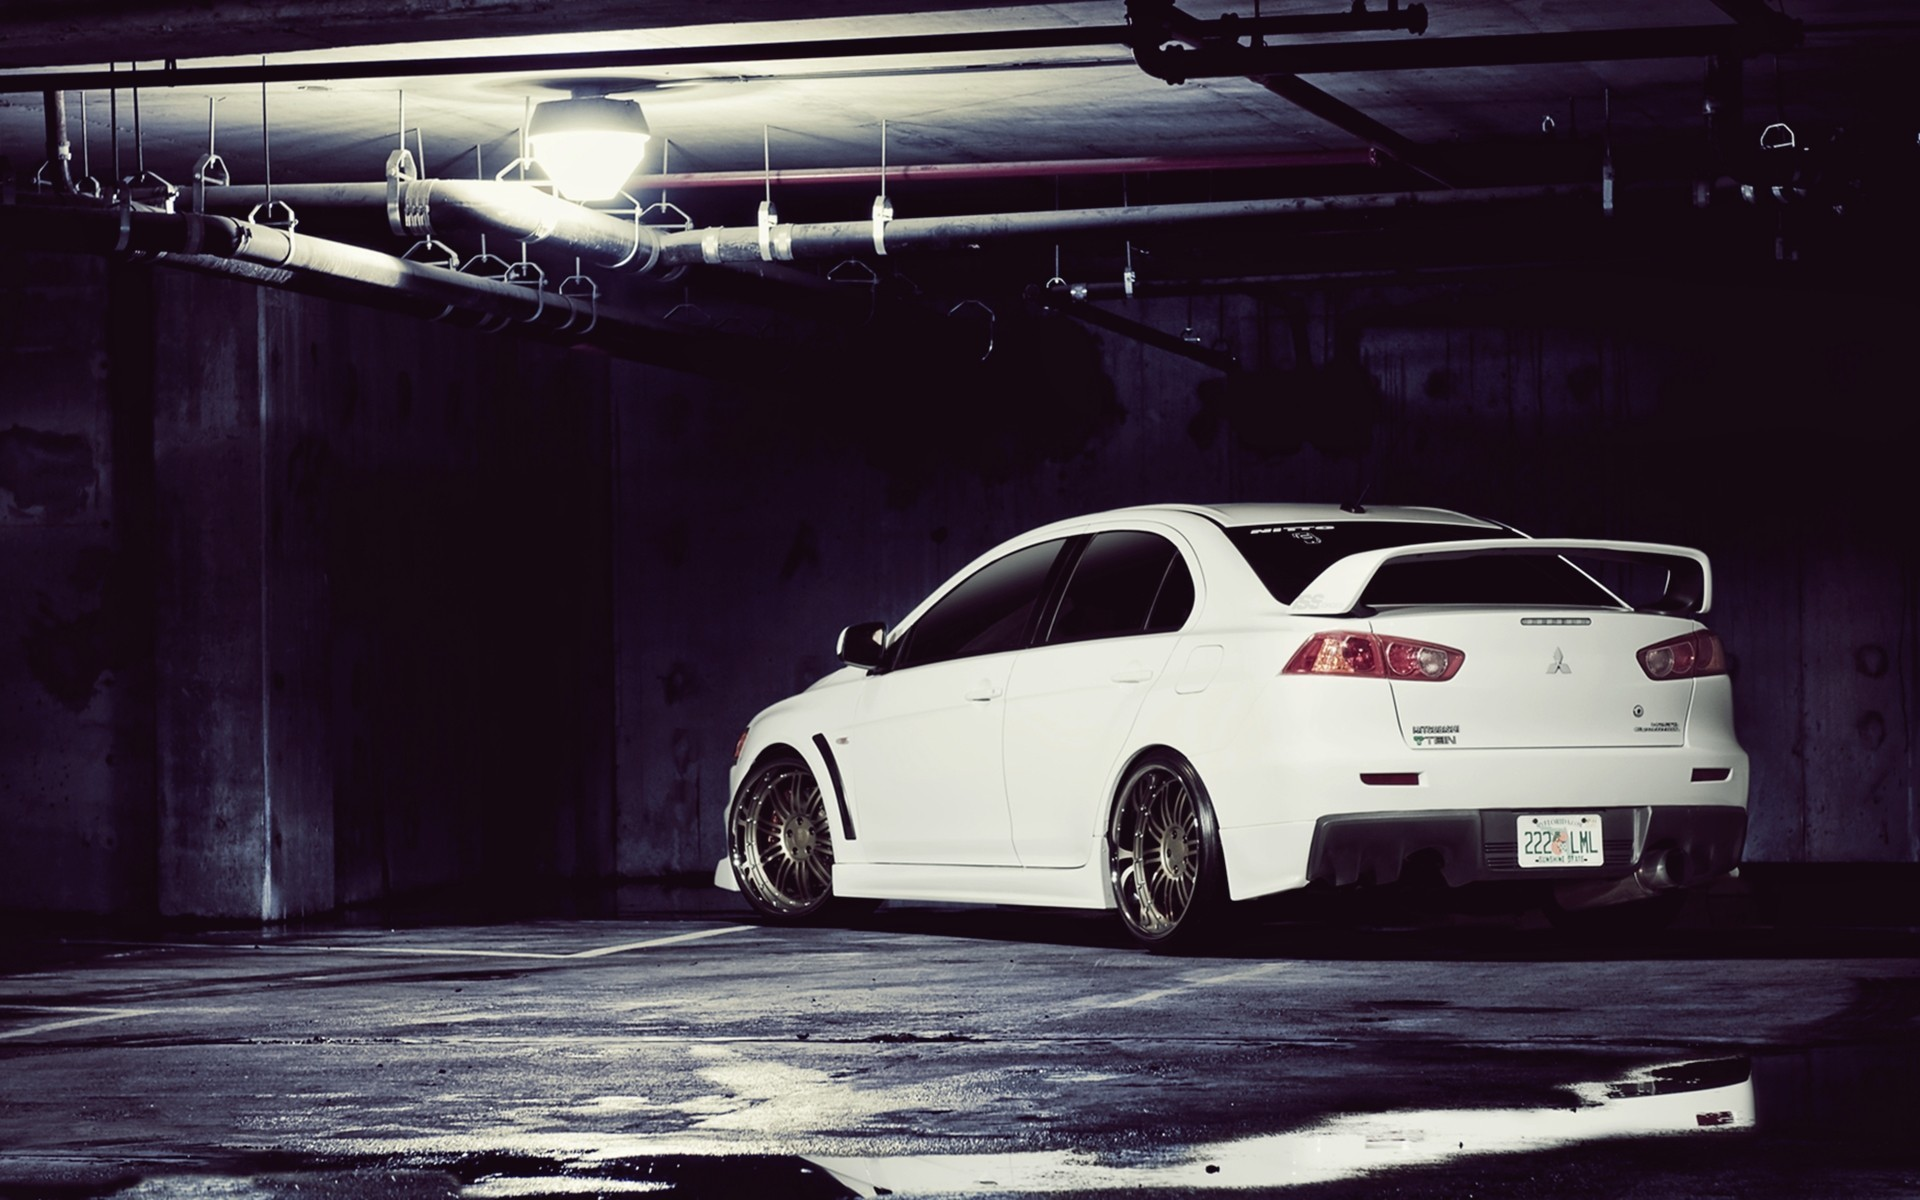 1920x1200 Cars vehicles Mitsubishi Lancer Evolution X wallpaper |  | 187186  | WallpaperUP